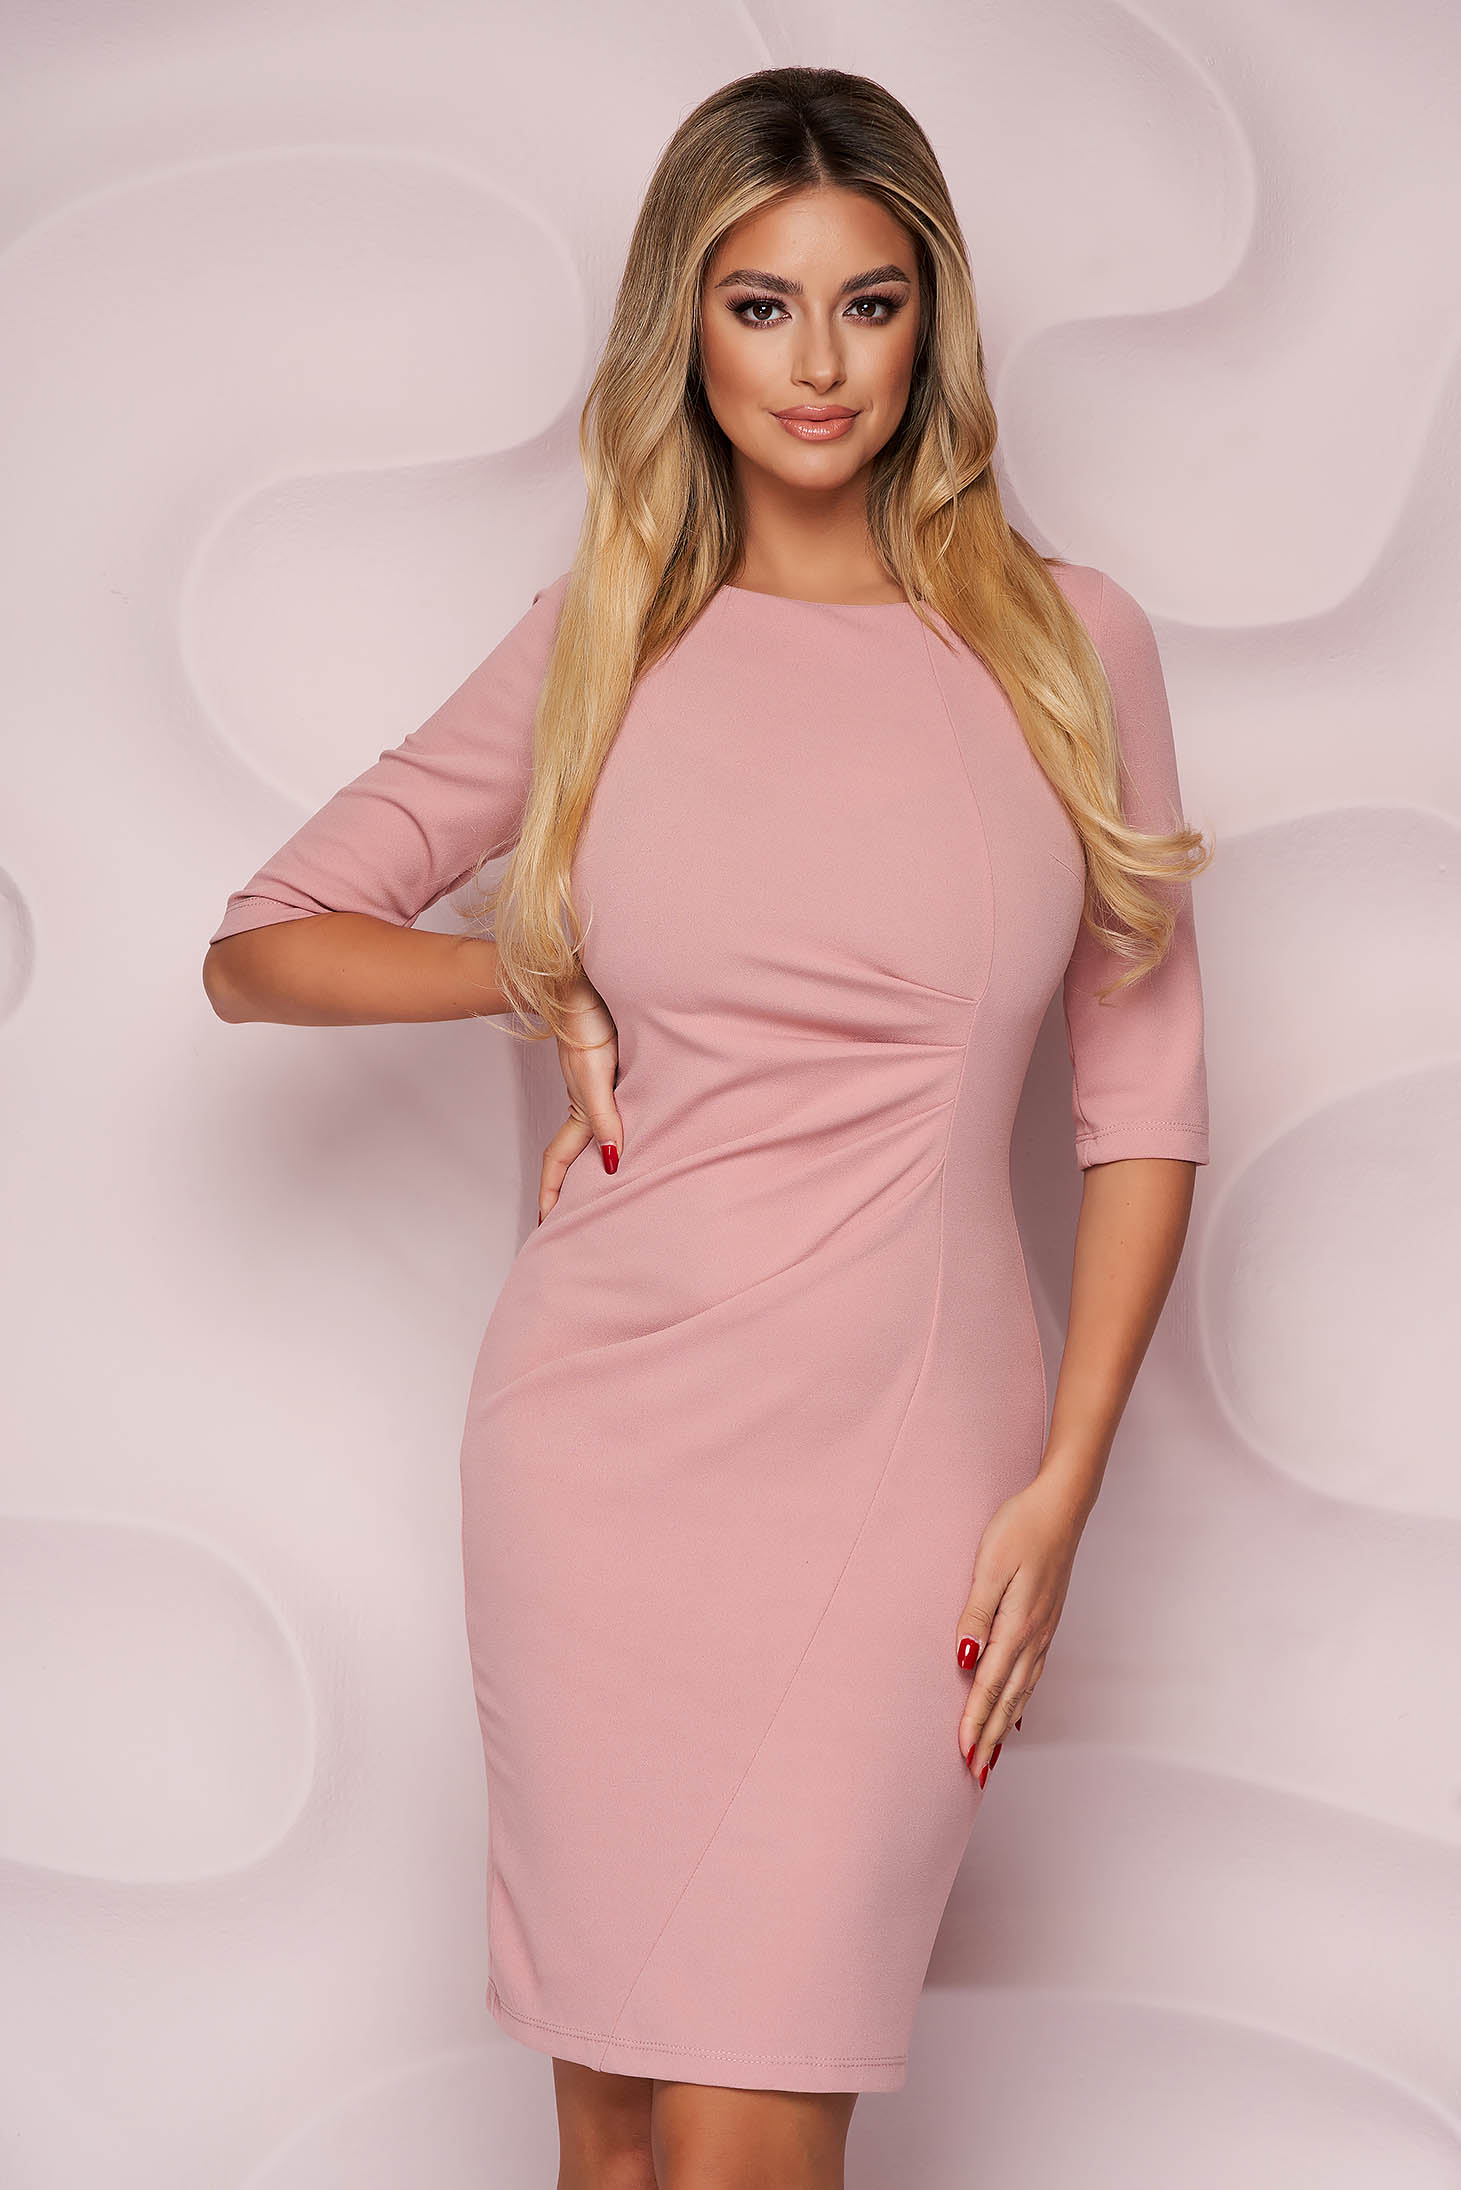 Lightpink dress pencil midi office thin fabric from elastic fabric with 3/4 sleeves